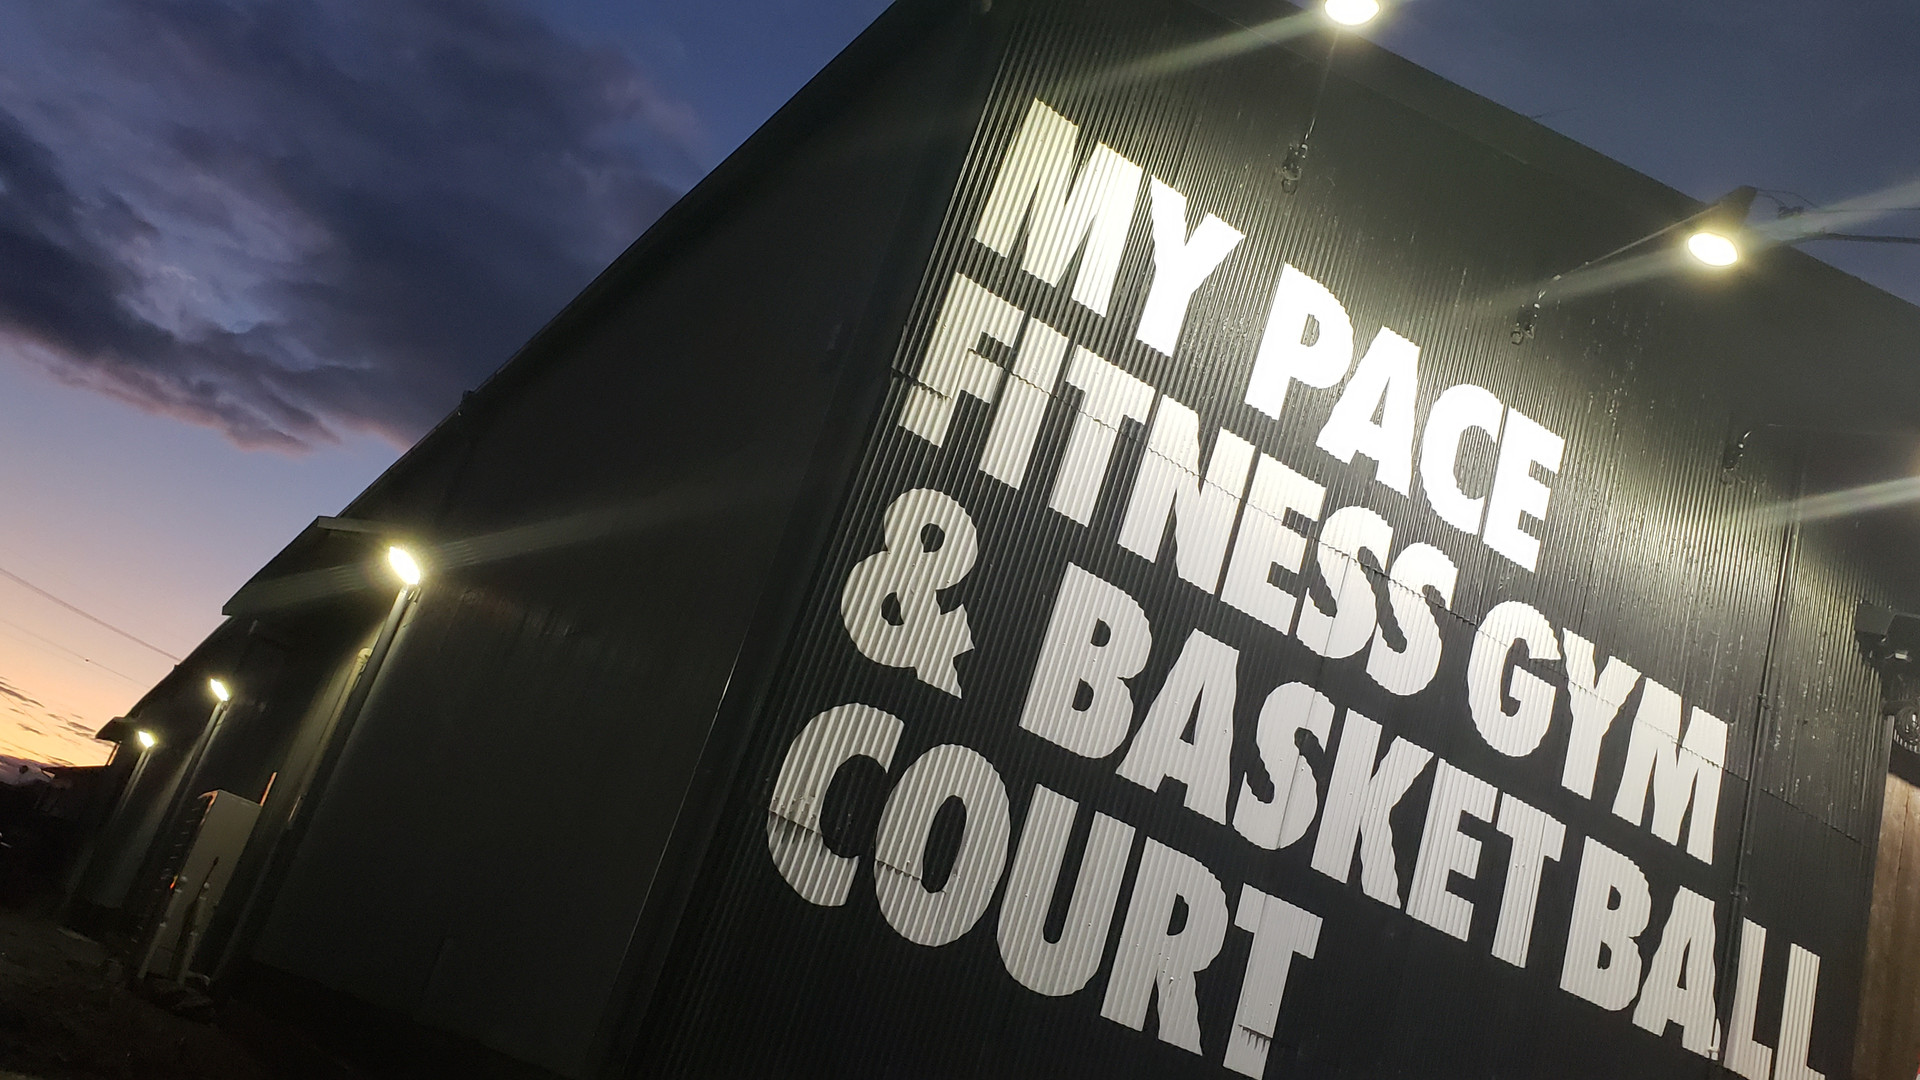 MY PACE FITNESS GYM